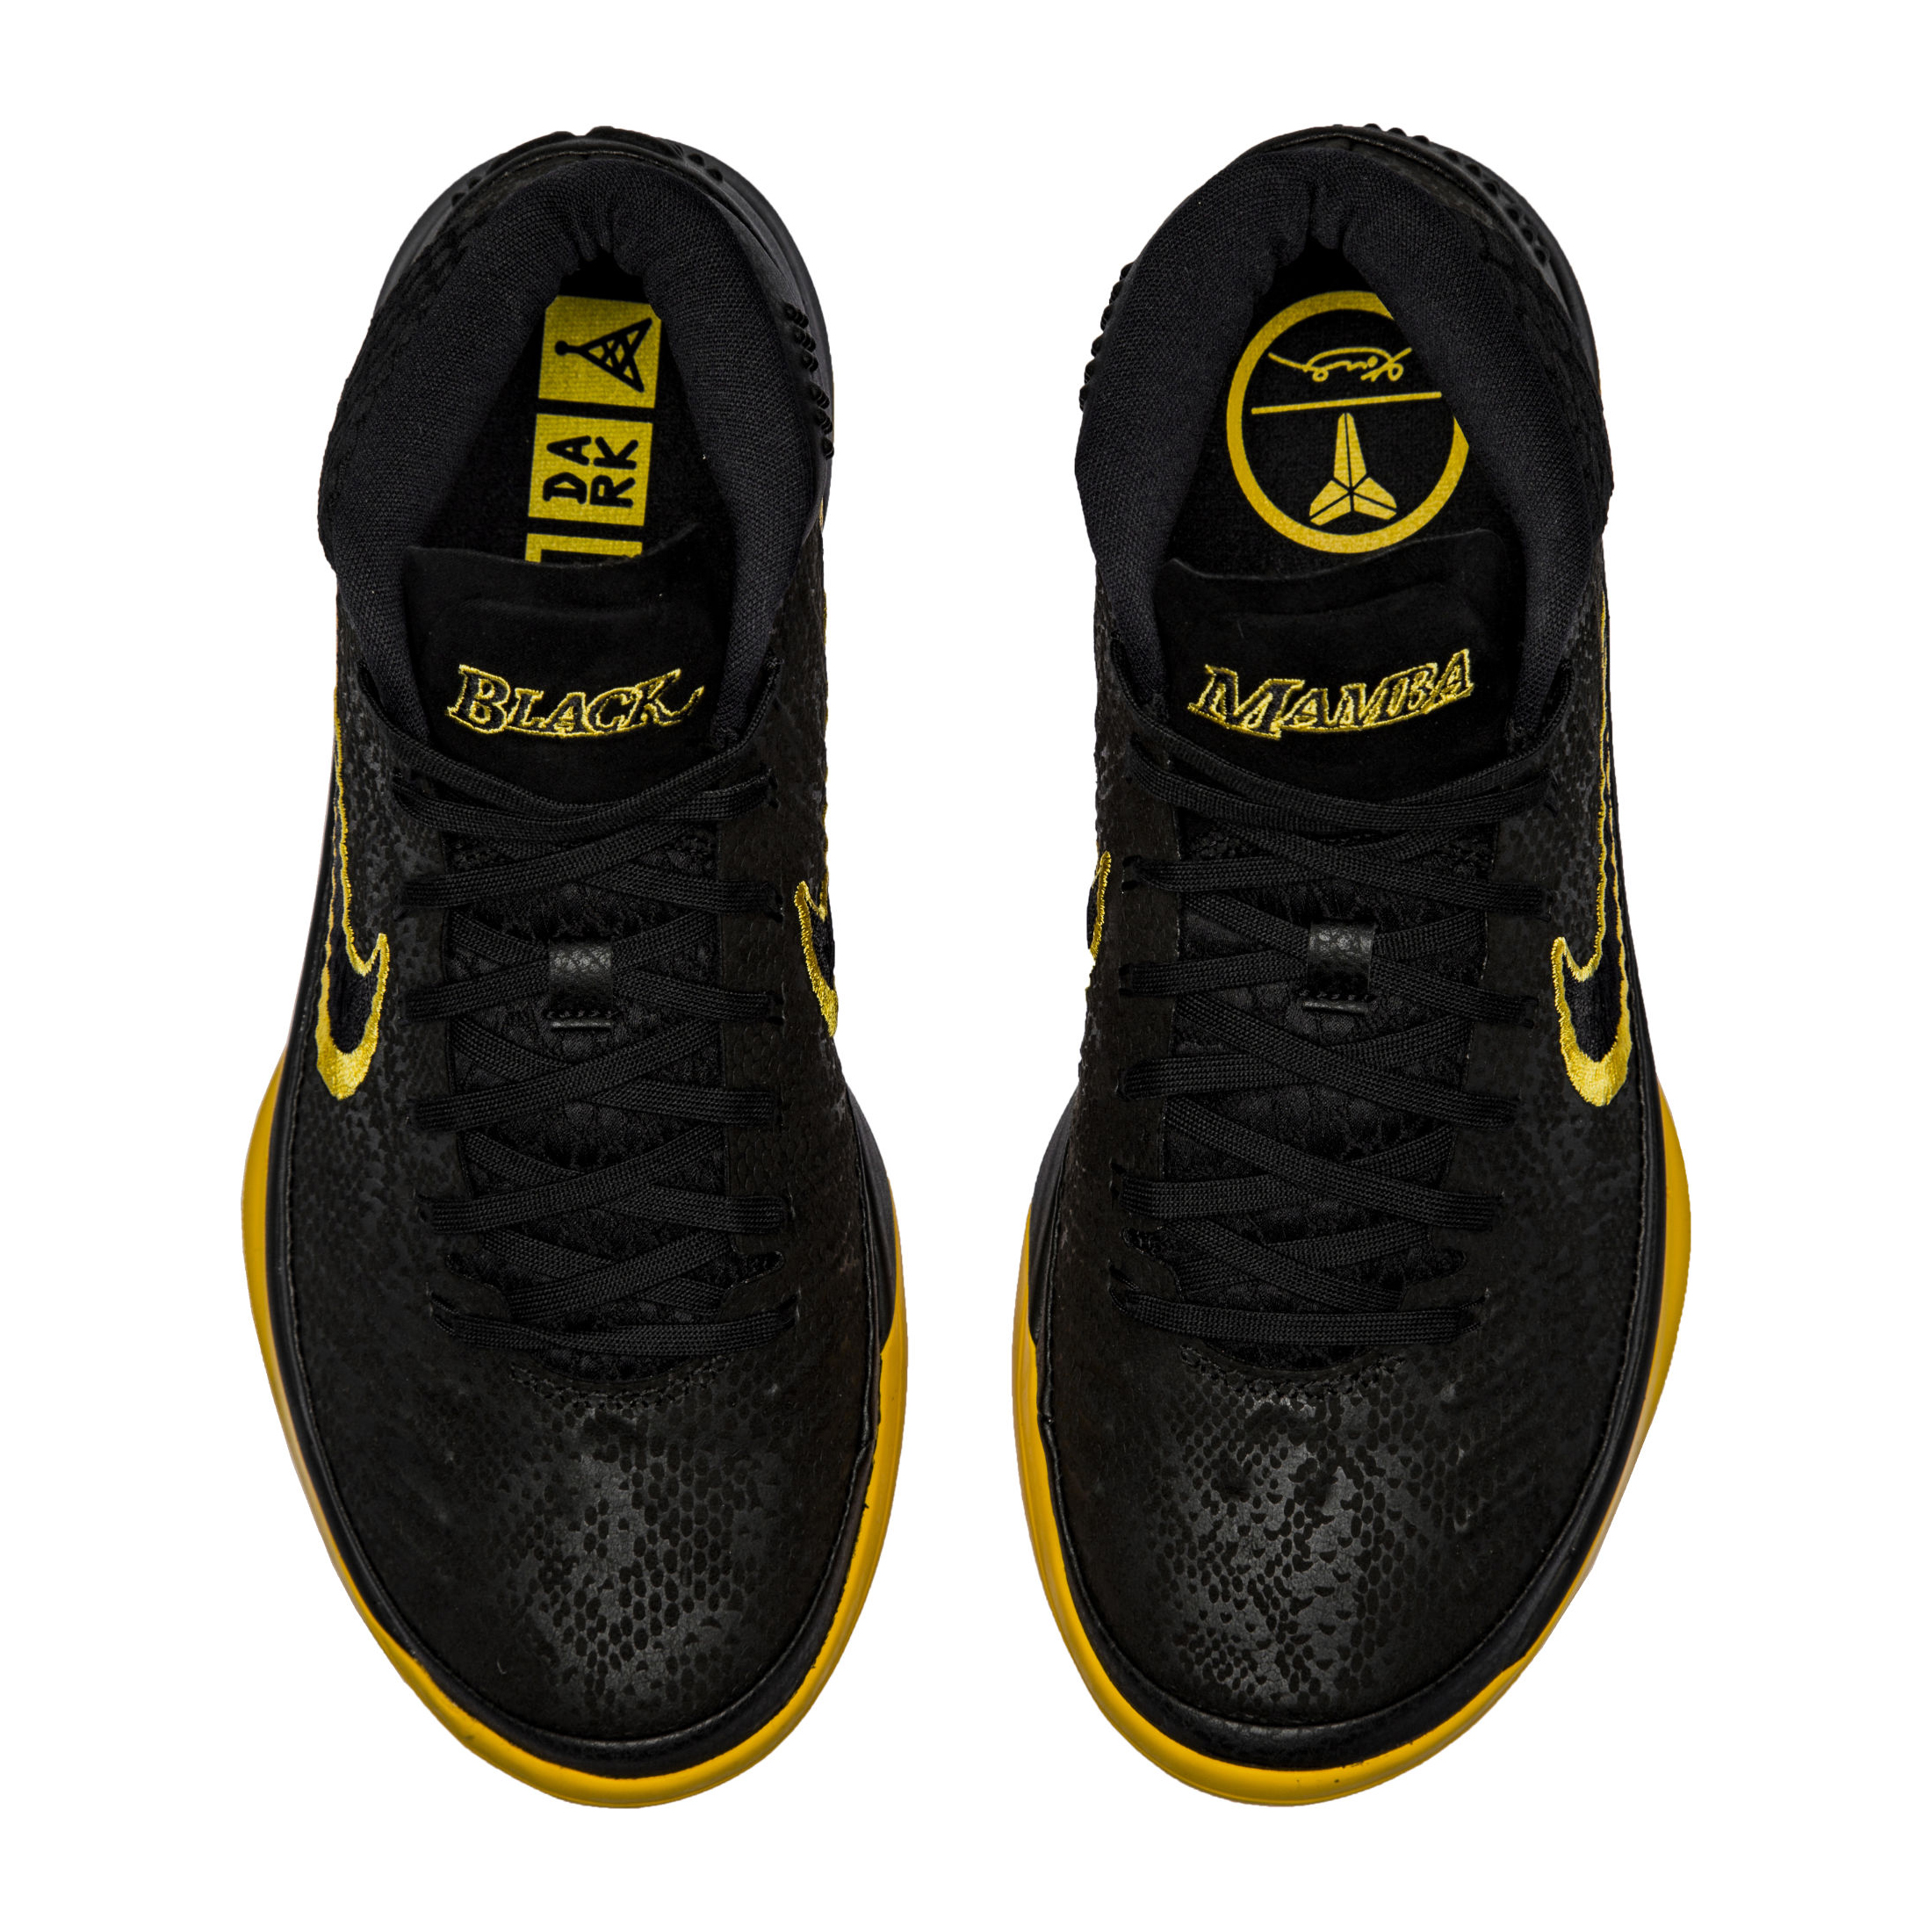 espiral Prevalecer confiar  The Nike Kobe AD Black Mamba 'City Edition' Will Be the Last Kobe of the  Year - WearTesters